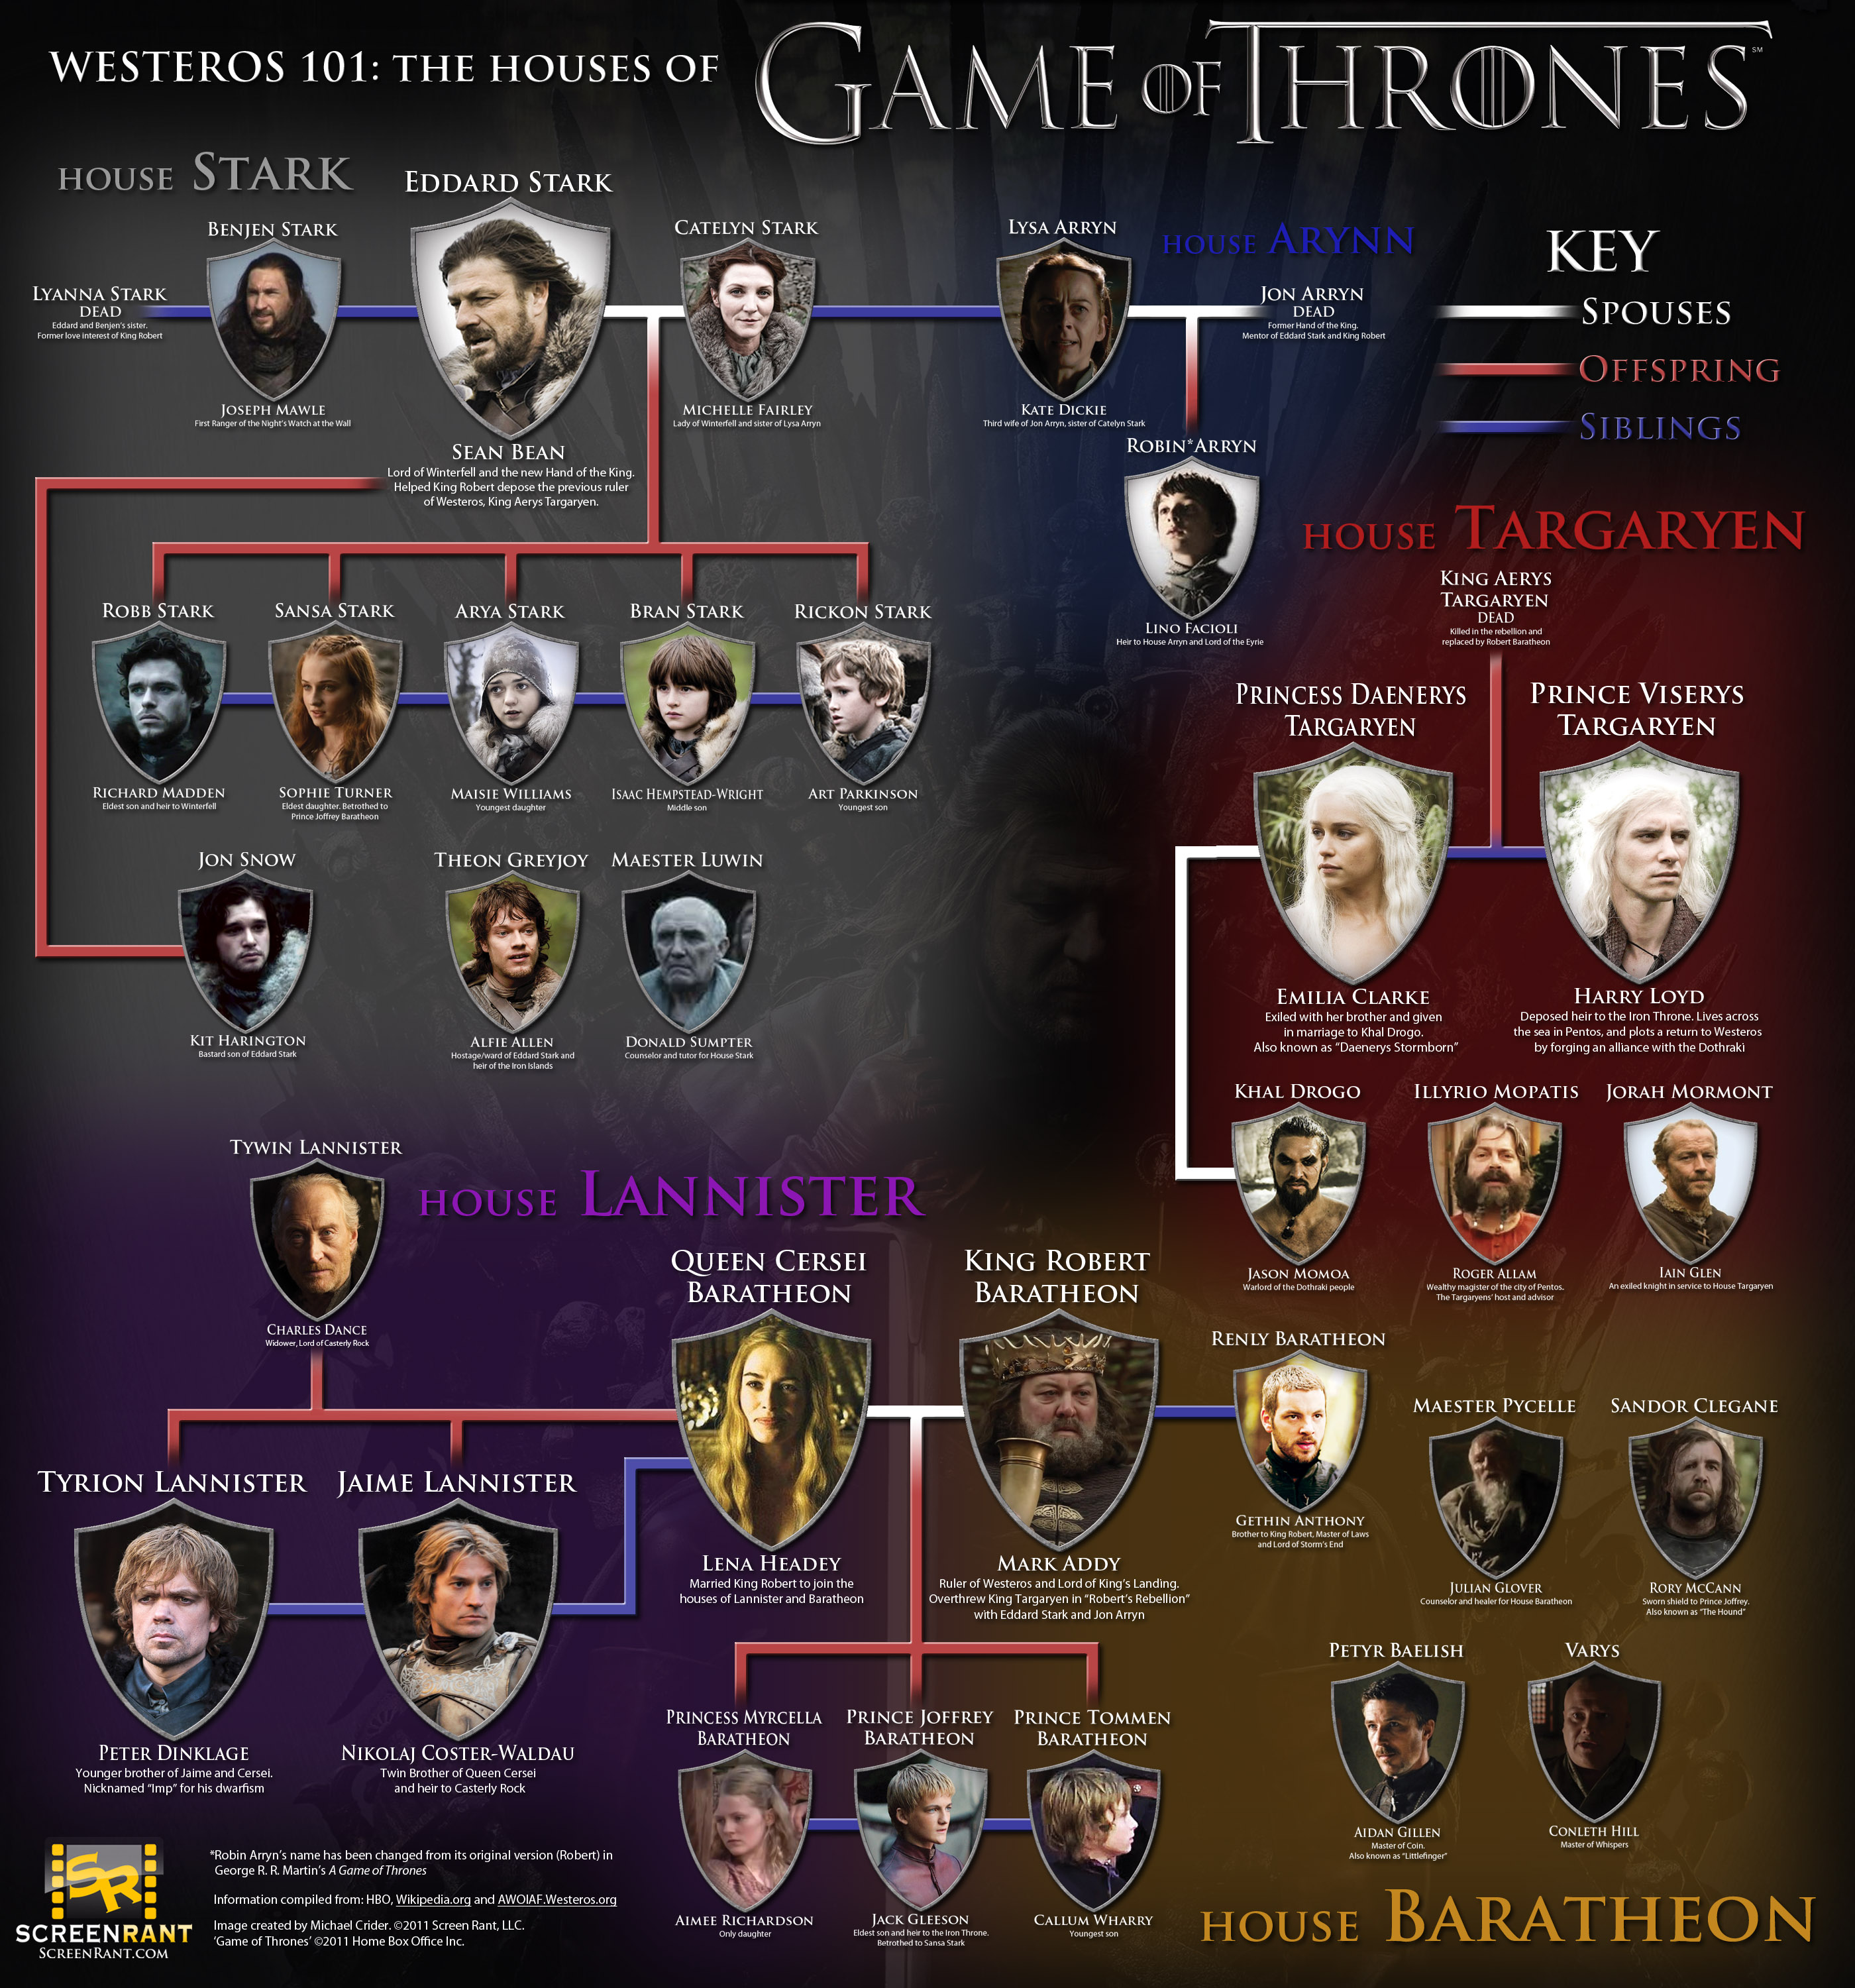 Game-of-Thrones-Houses-infographic-Westeros-101-f.jpg